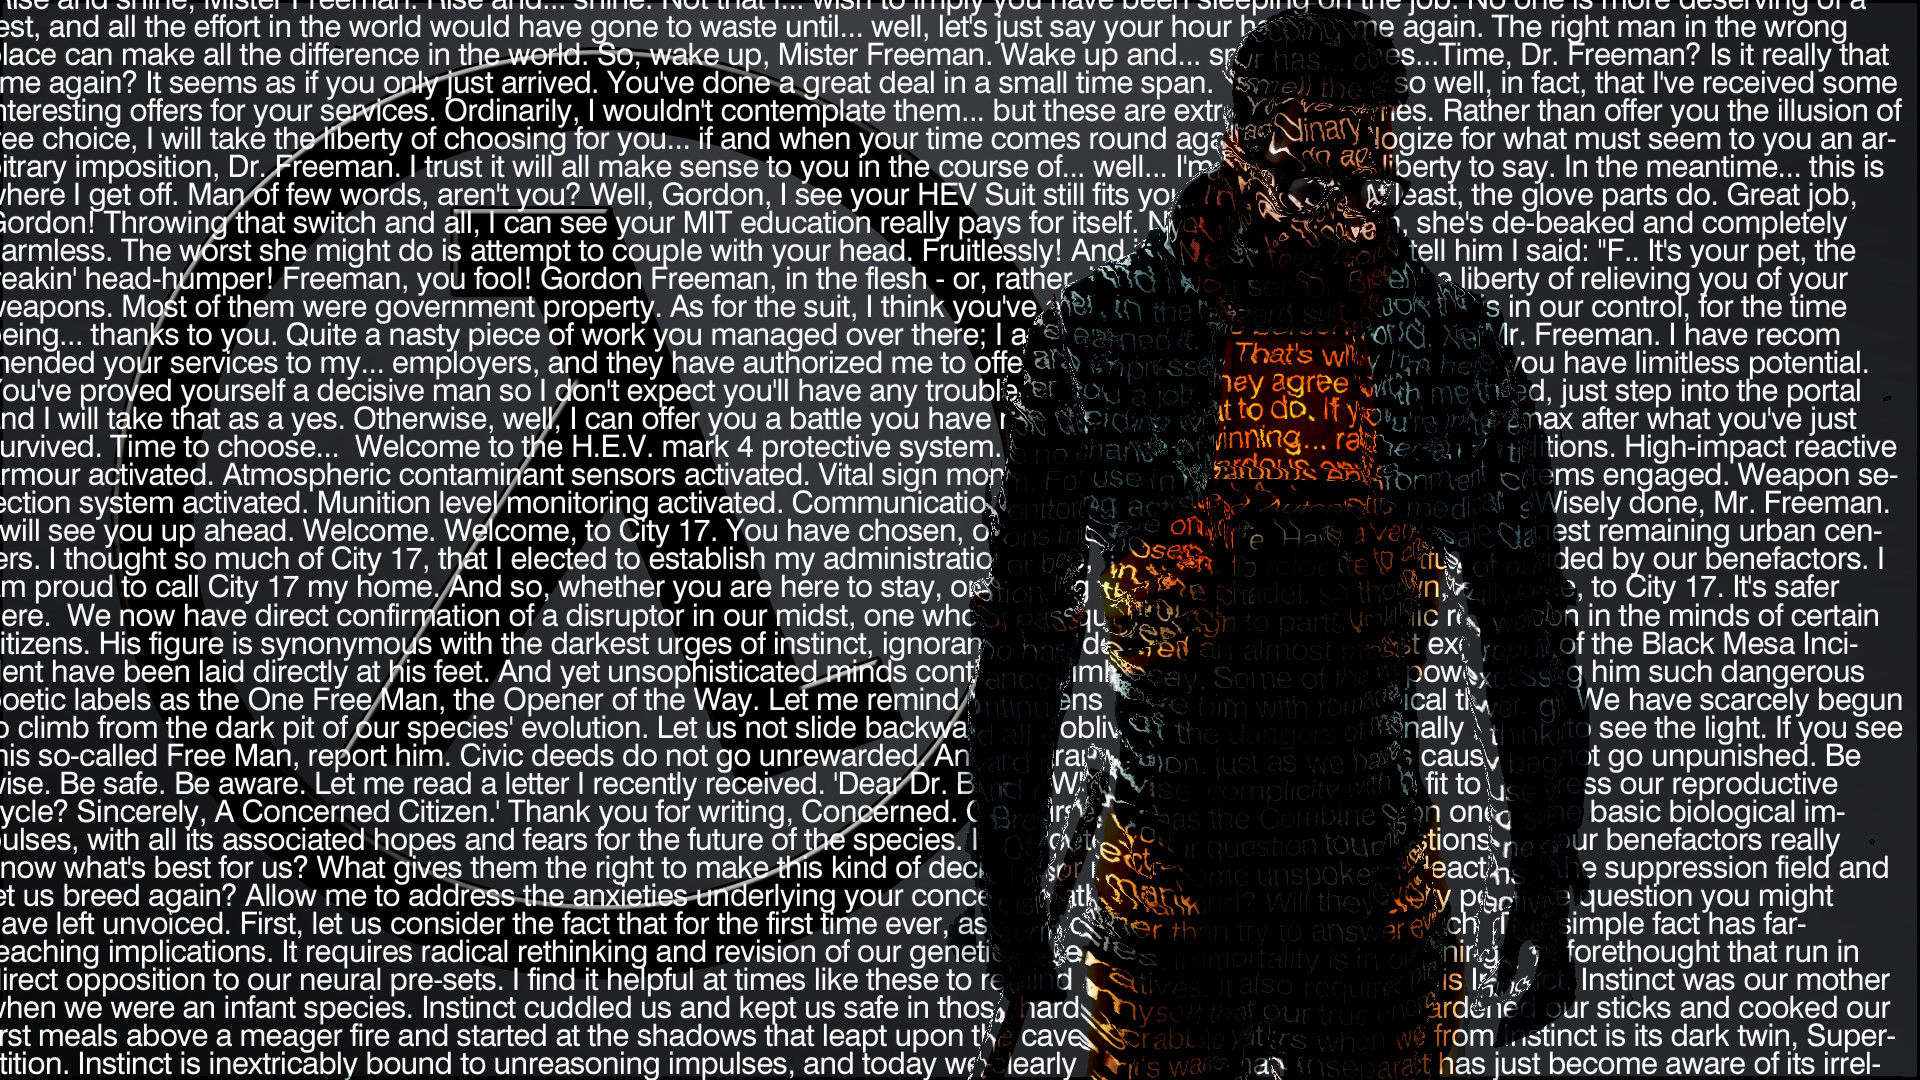 1920x1080 Half Life, Valve Corporation, Gordon Freeman, Video Games .